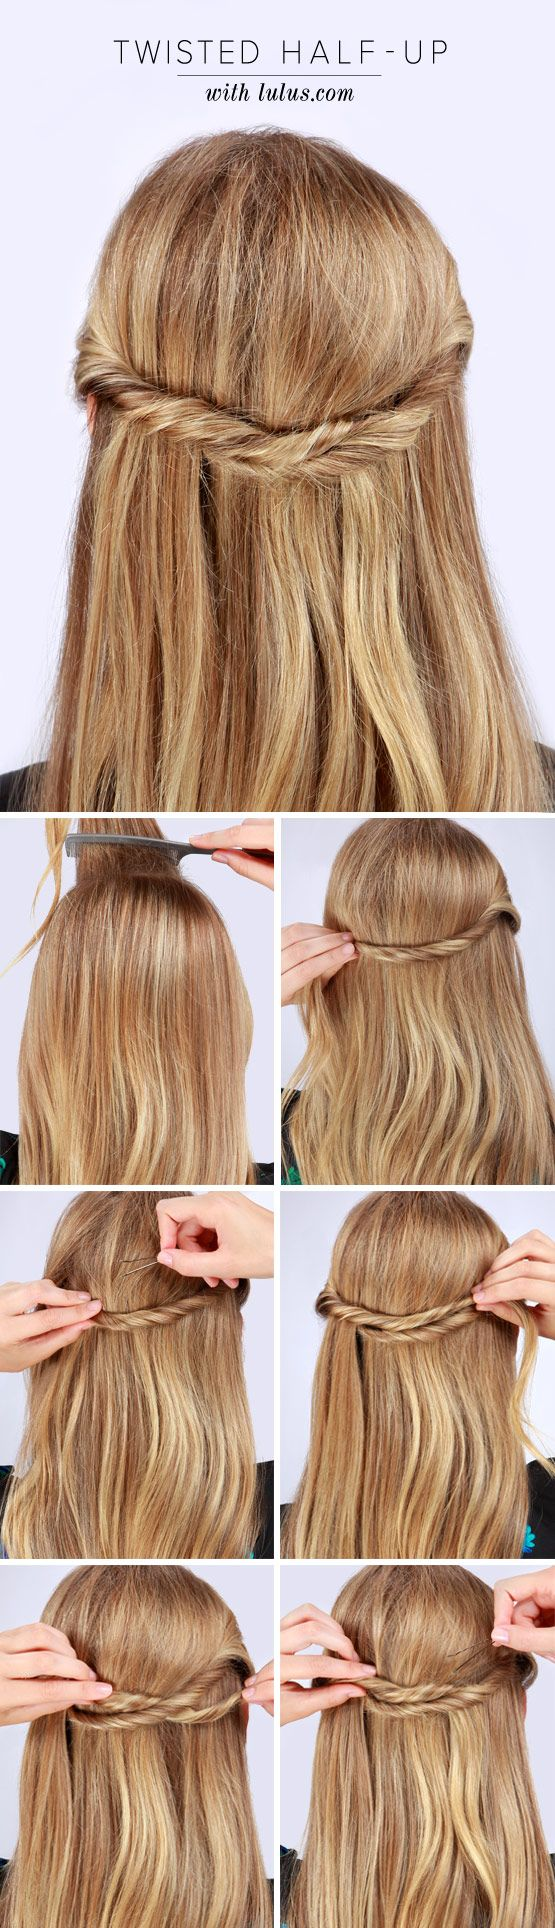 Lulus How To Twisted Half Up Hair Tutorial